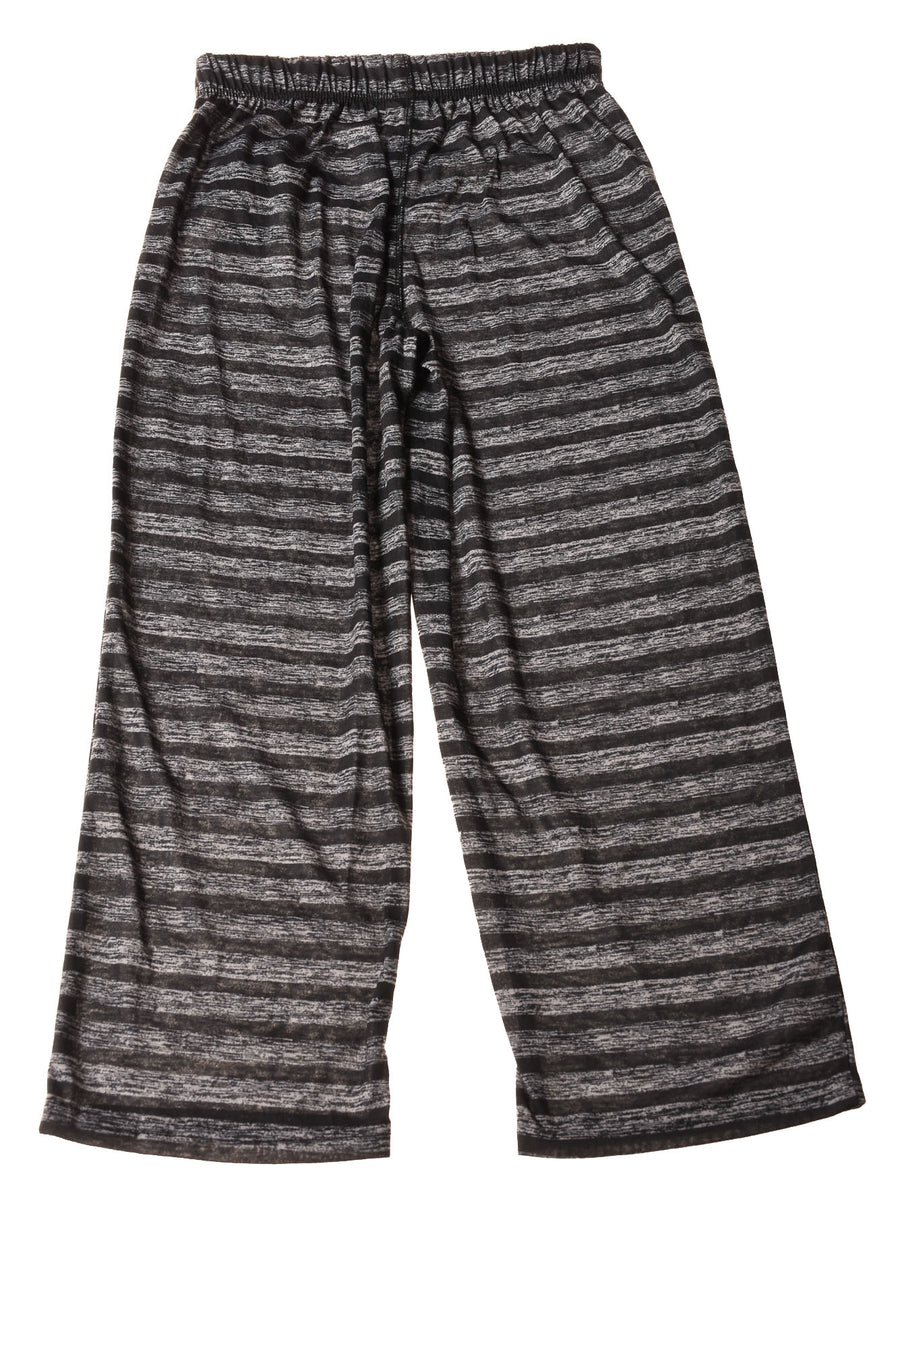 NEW Max And Olivia Girl's Pants  12/14 Black / Striped